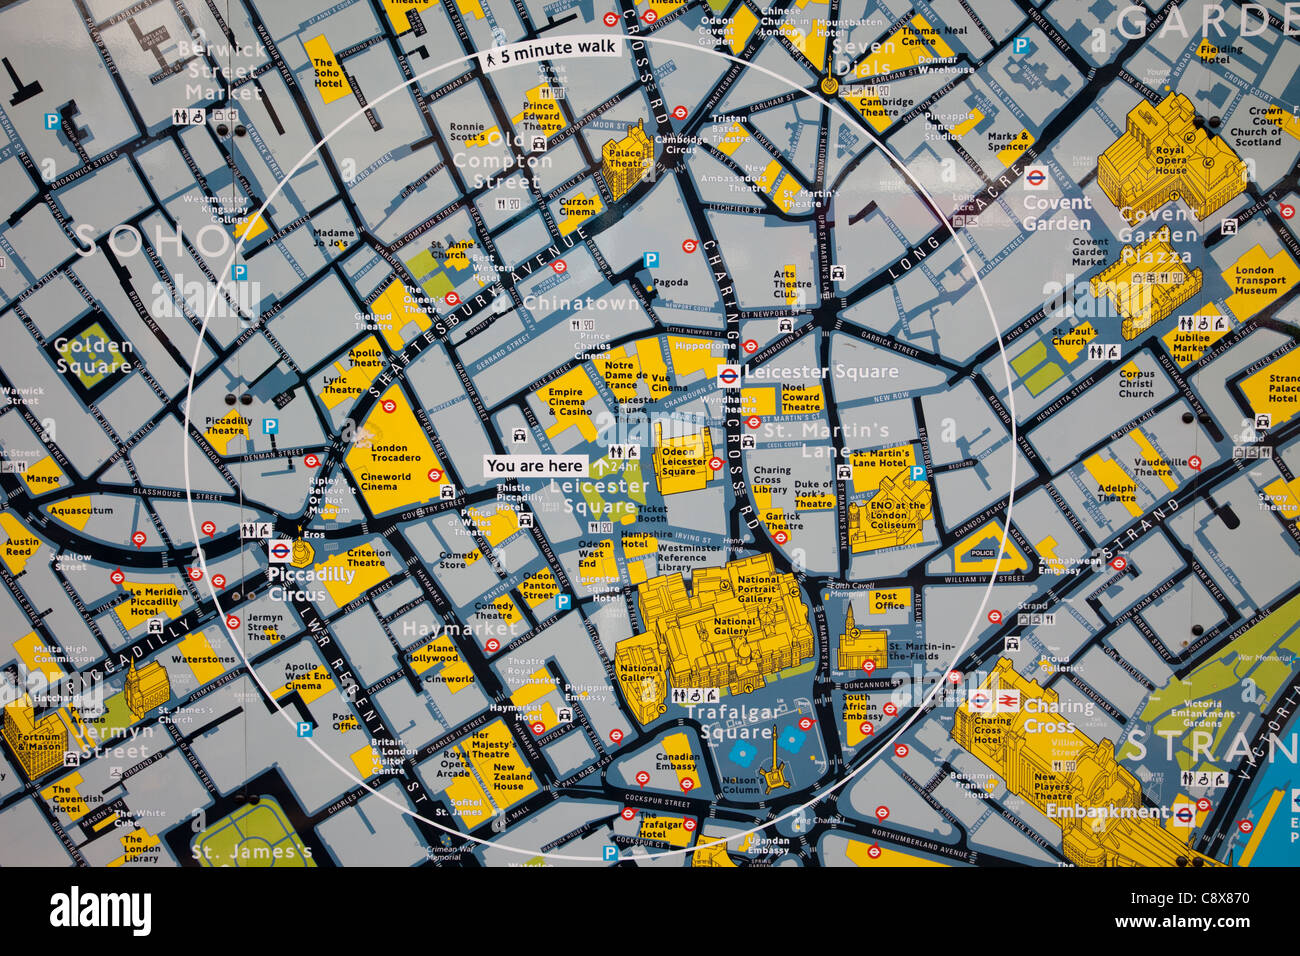 London Tourist Information Map.England London Leicester Square Tourist Information Map Stock